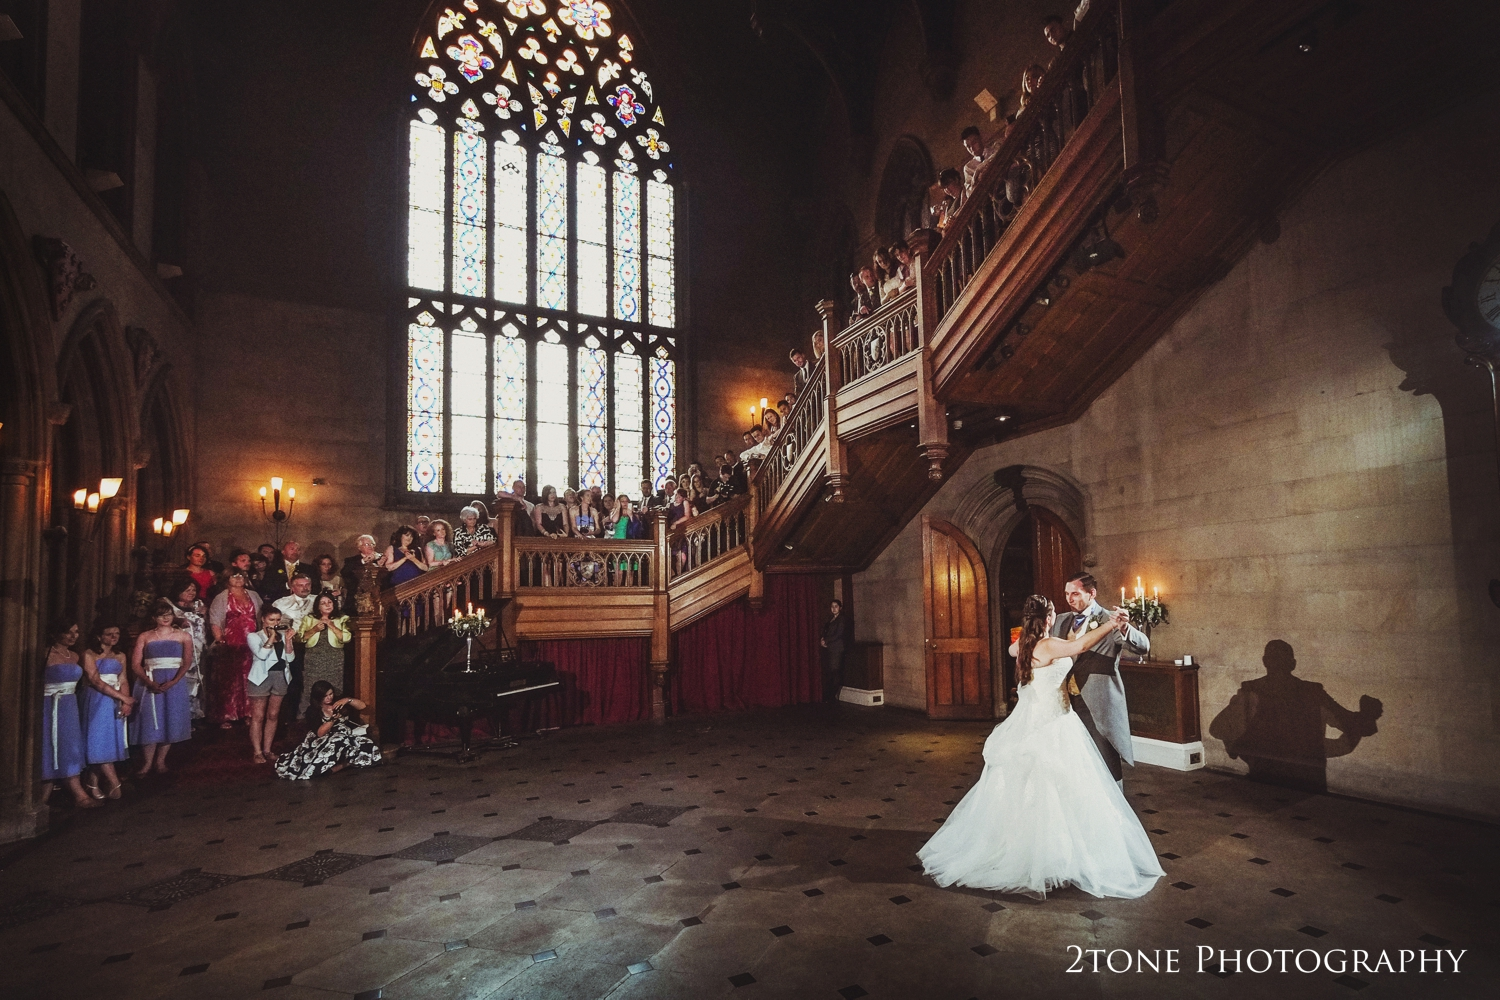 Natalie and Russell's wedding guests were invited on to the grand staircase to welcome Natalie and Russell to take to the dance floor. Natalie and Russell looked incredible as they waltzed across thevast open floor space in the beautiful halllooking like a scene from a fairytale.